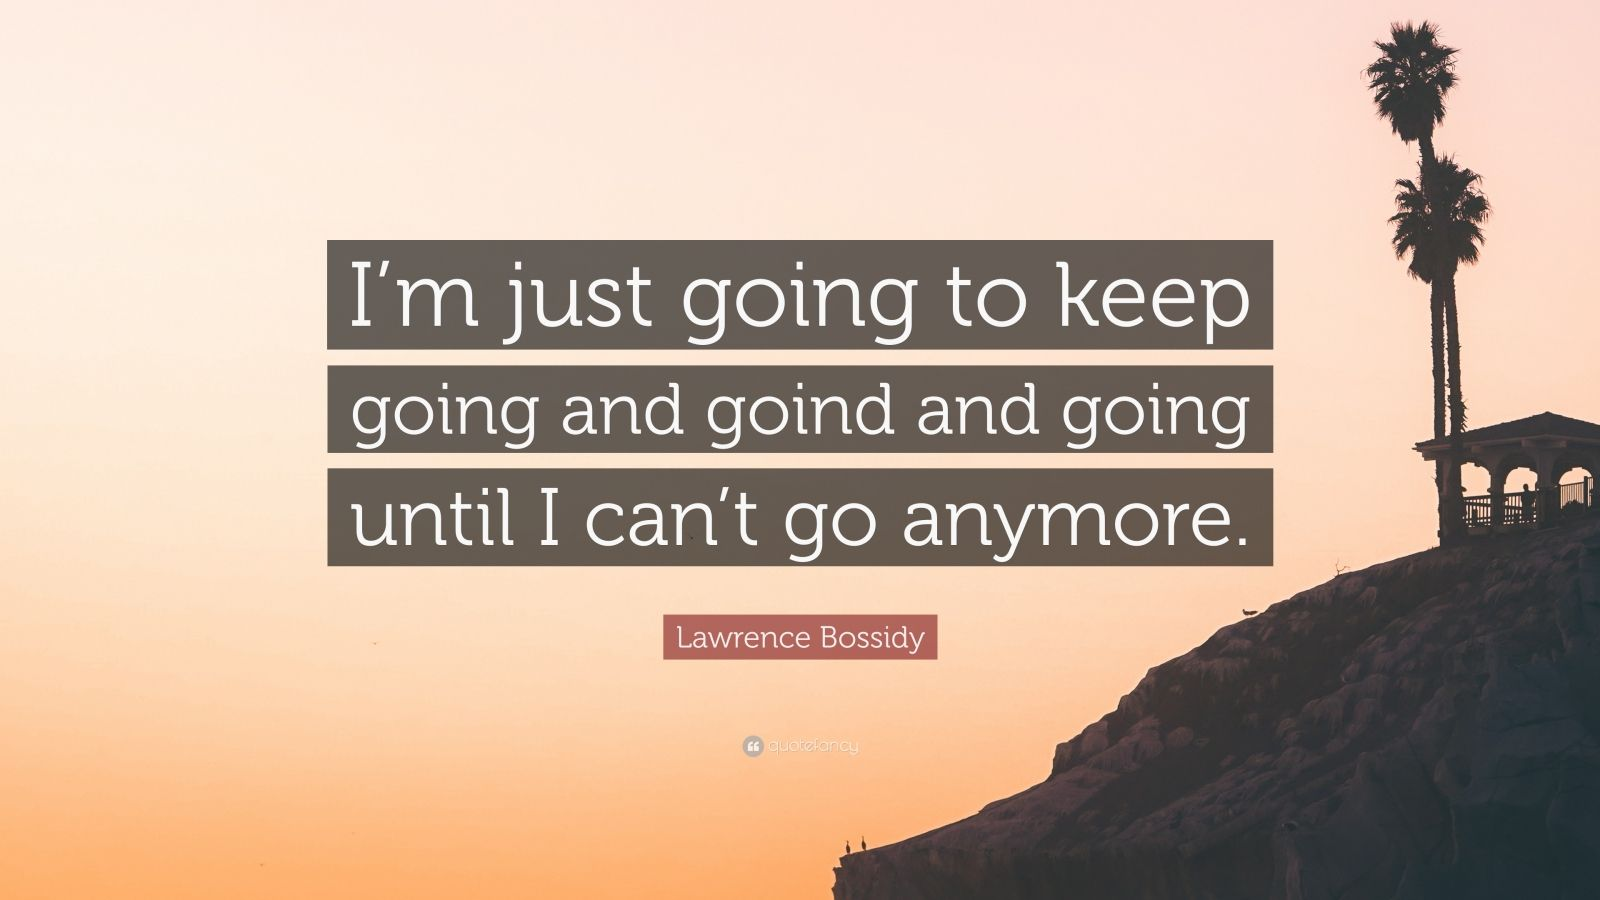 """Lawrence Bossidy Quote: """"I'm just going to keep going and goind and going until I can't go anymore."""""""